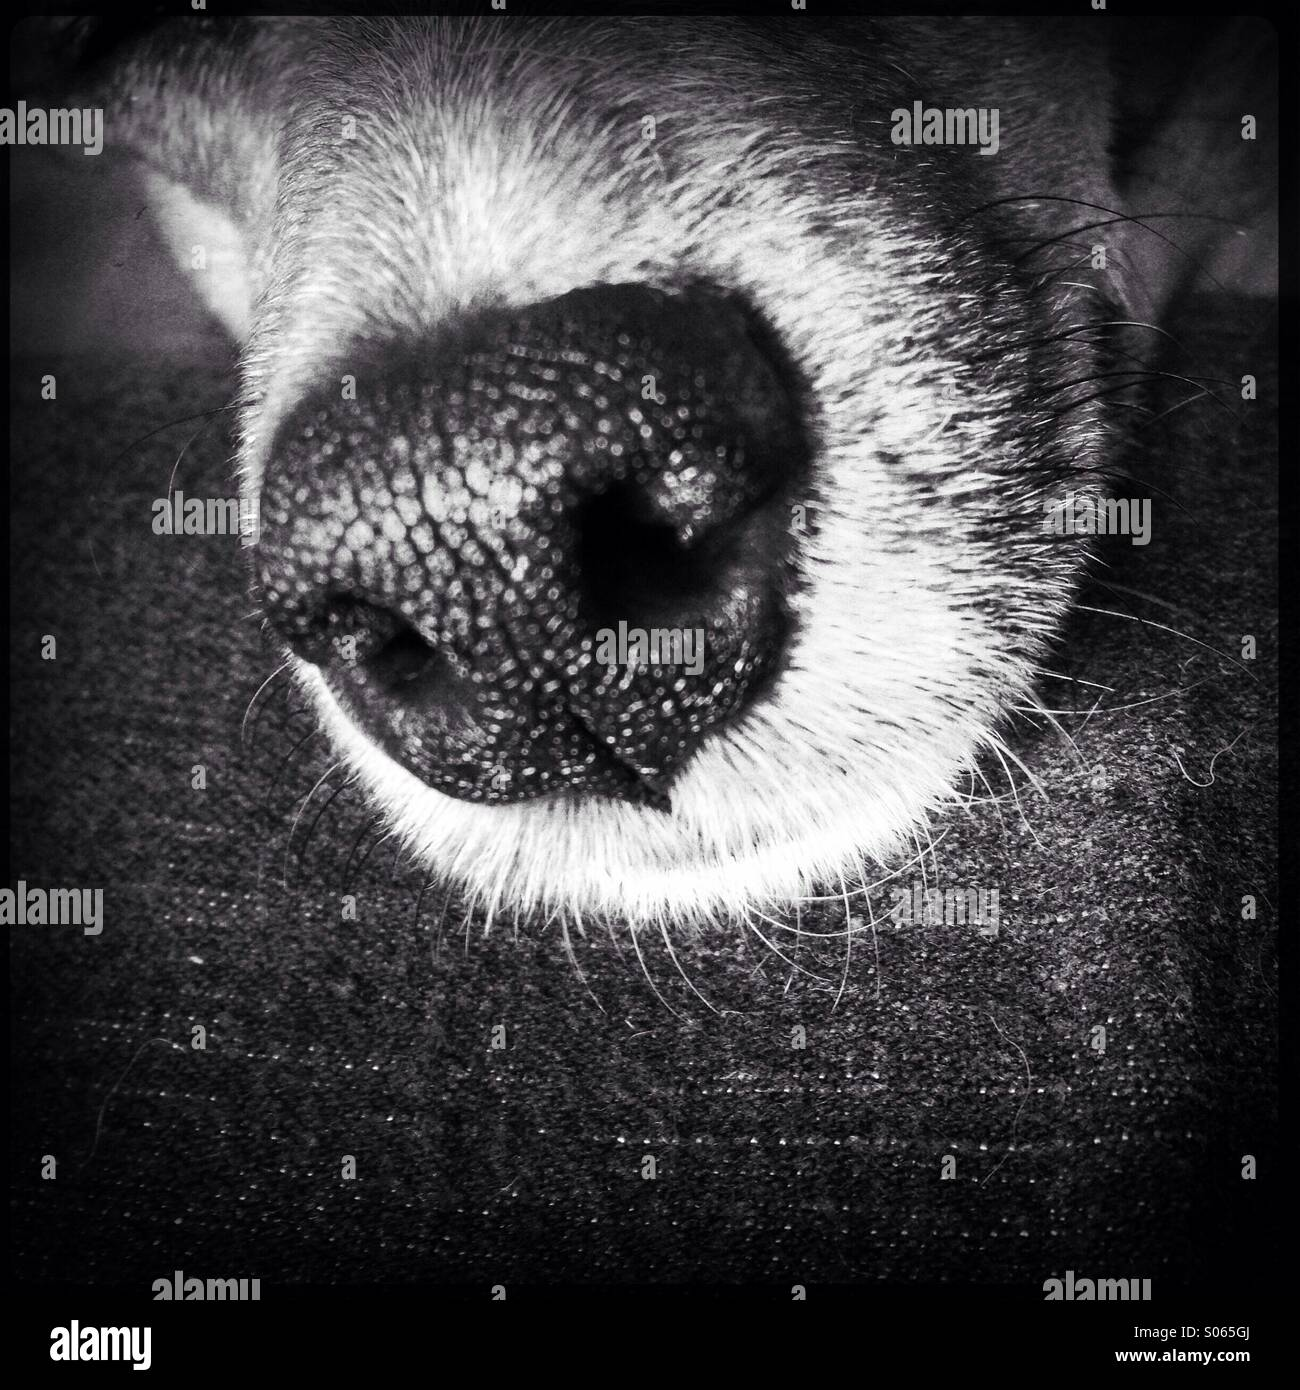 Jack Russell's nose - Stock Image